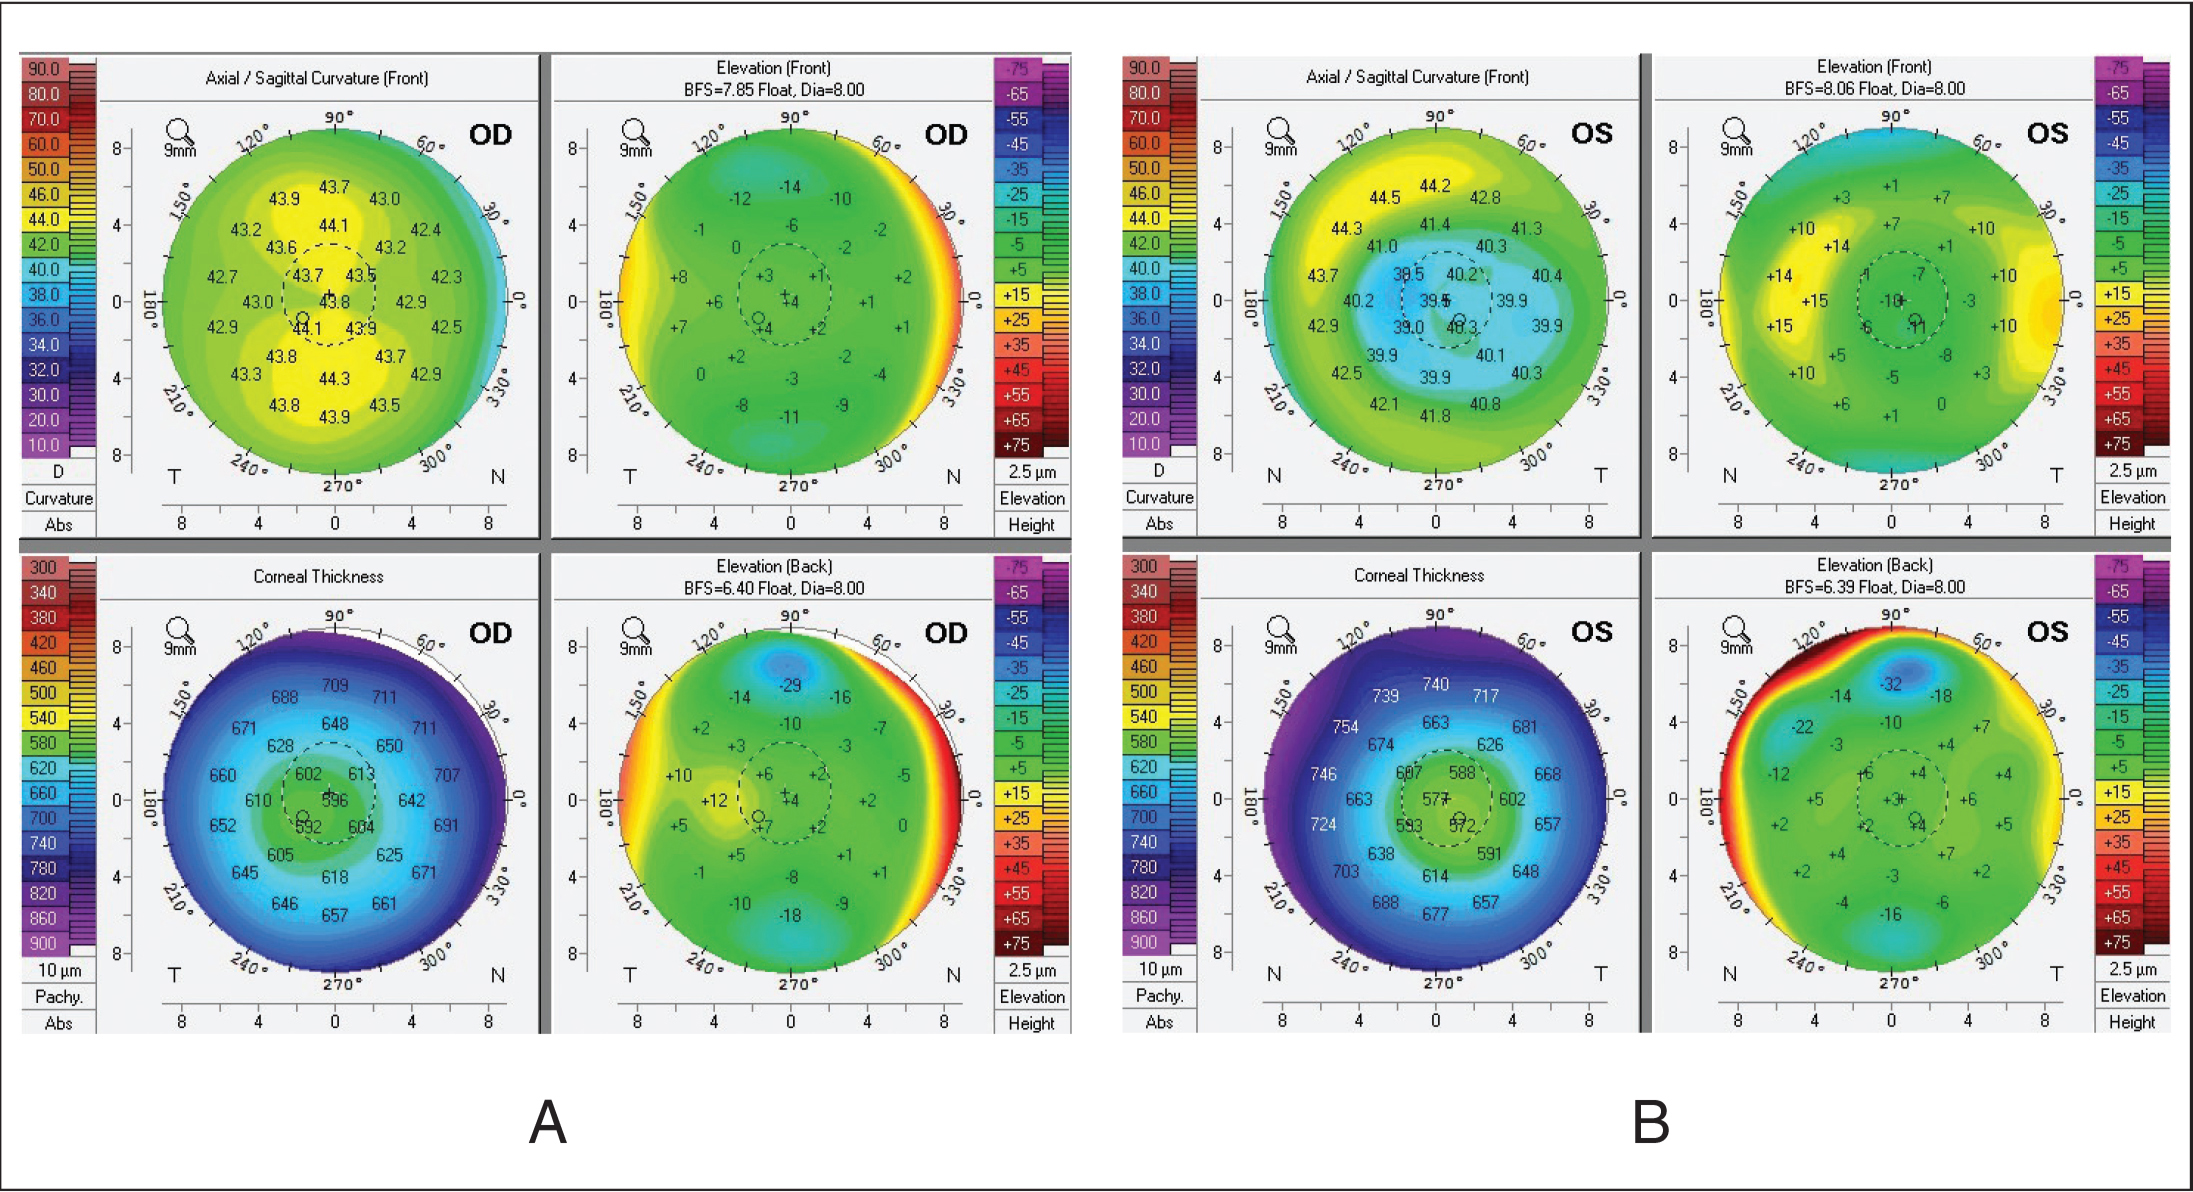 Pentacam (Oculus Optikgeräte, Wetzlar, Germany) results for case 2 at 16-year follow-up. There is slight temporal decentration of the ablation bed, symmetric between the left and right eye, and no evidence of ectasia.